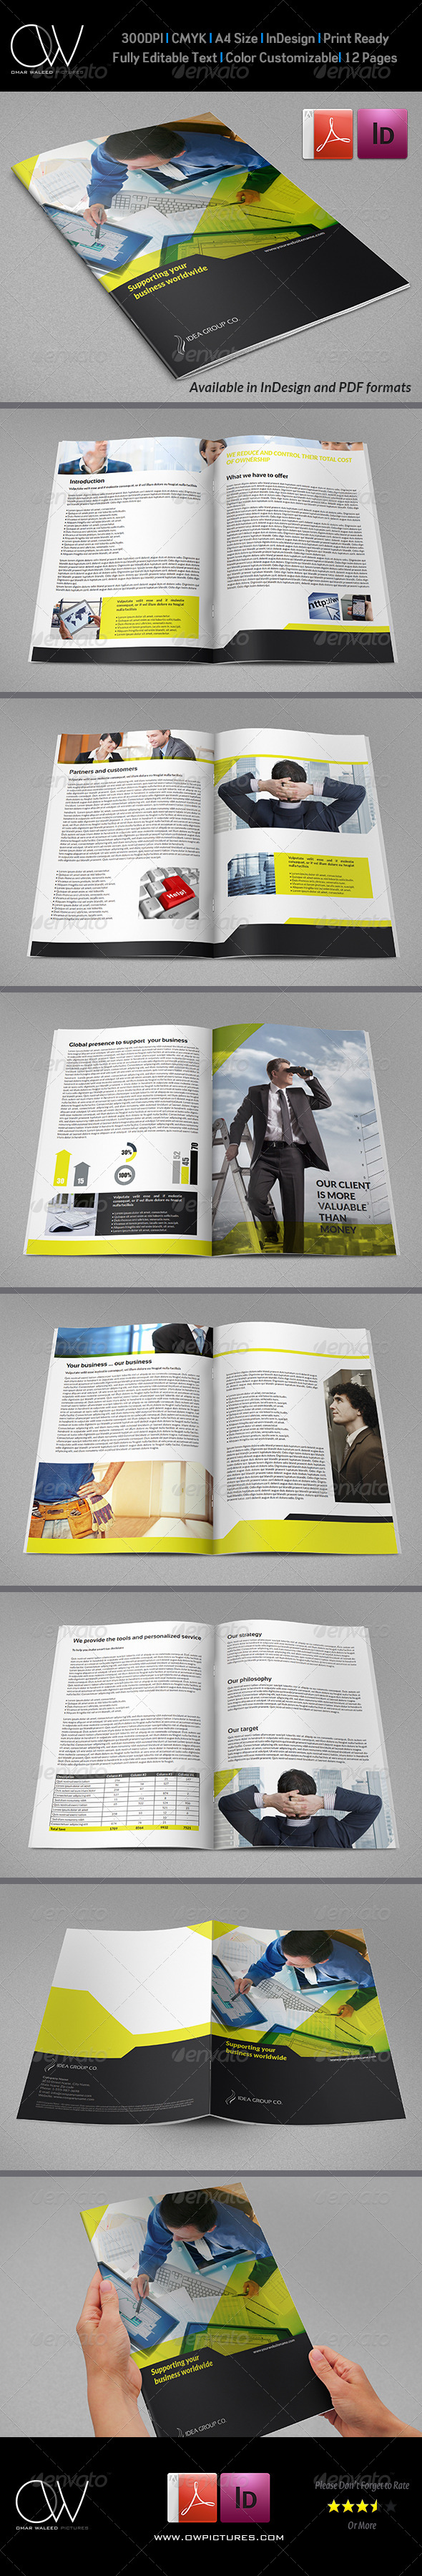 Corporate Brochure Template Vol.23 - 12 Pages - Corporate Brochures